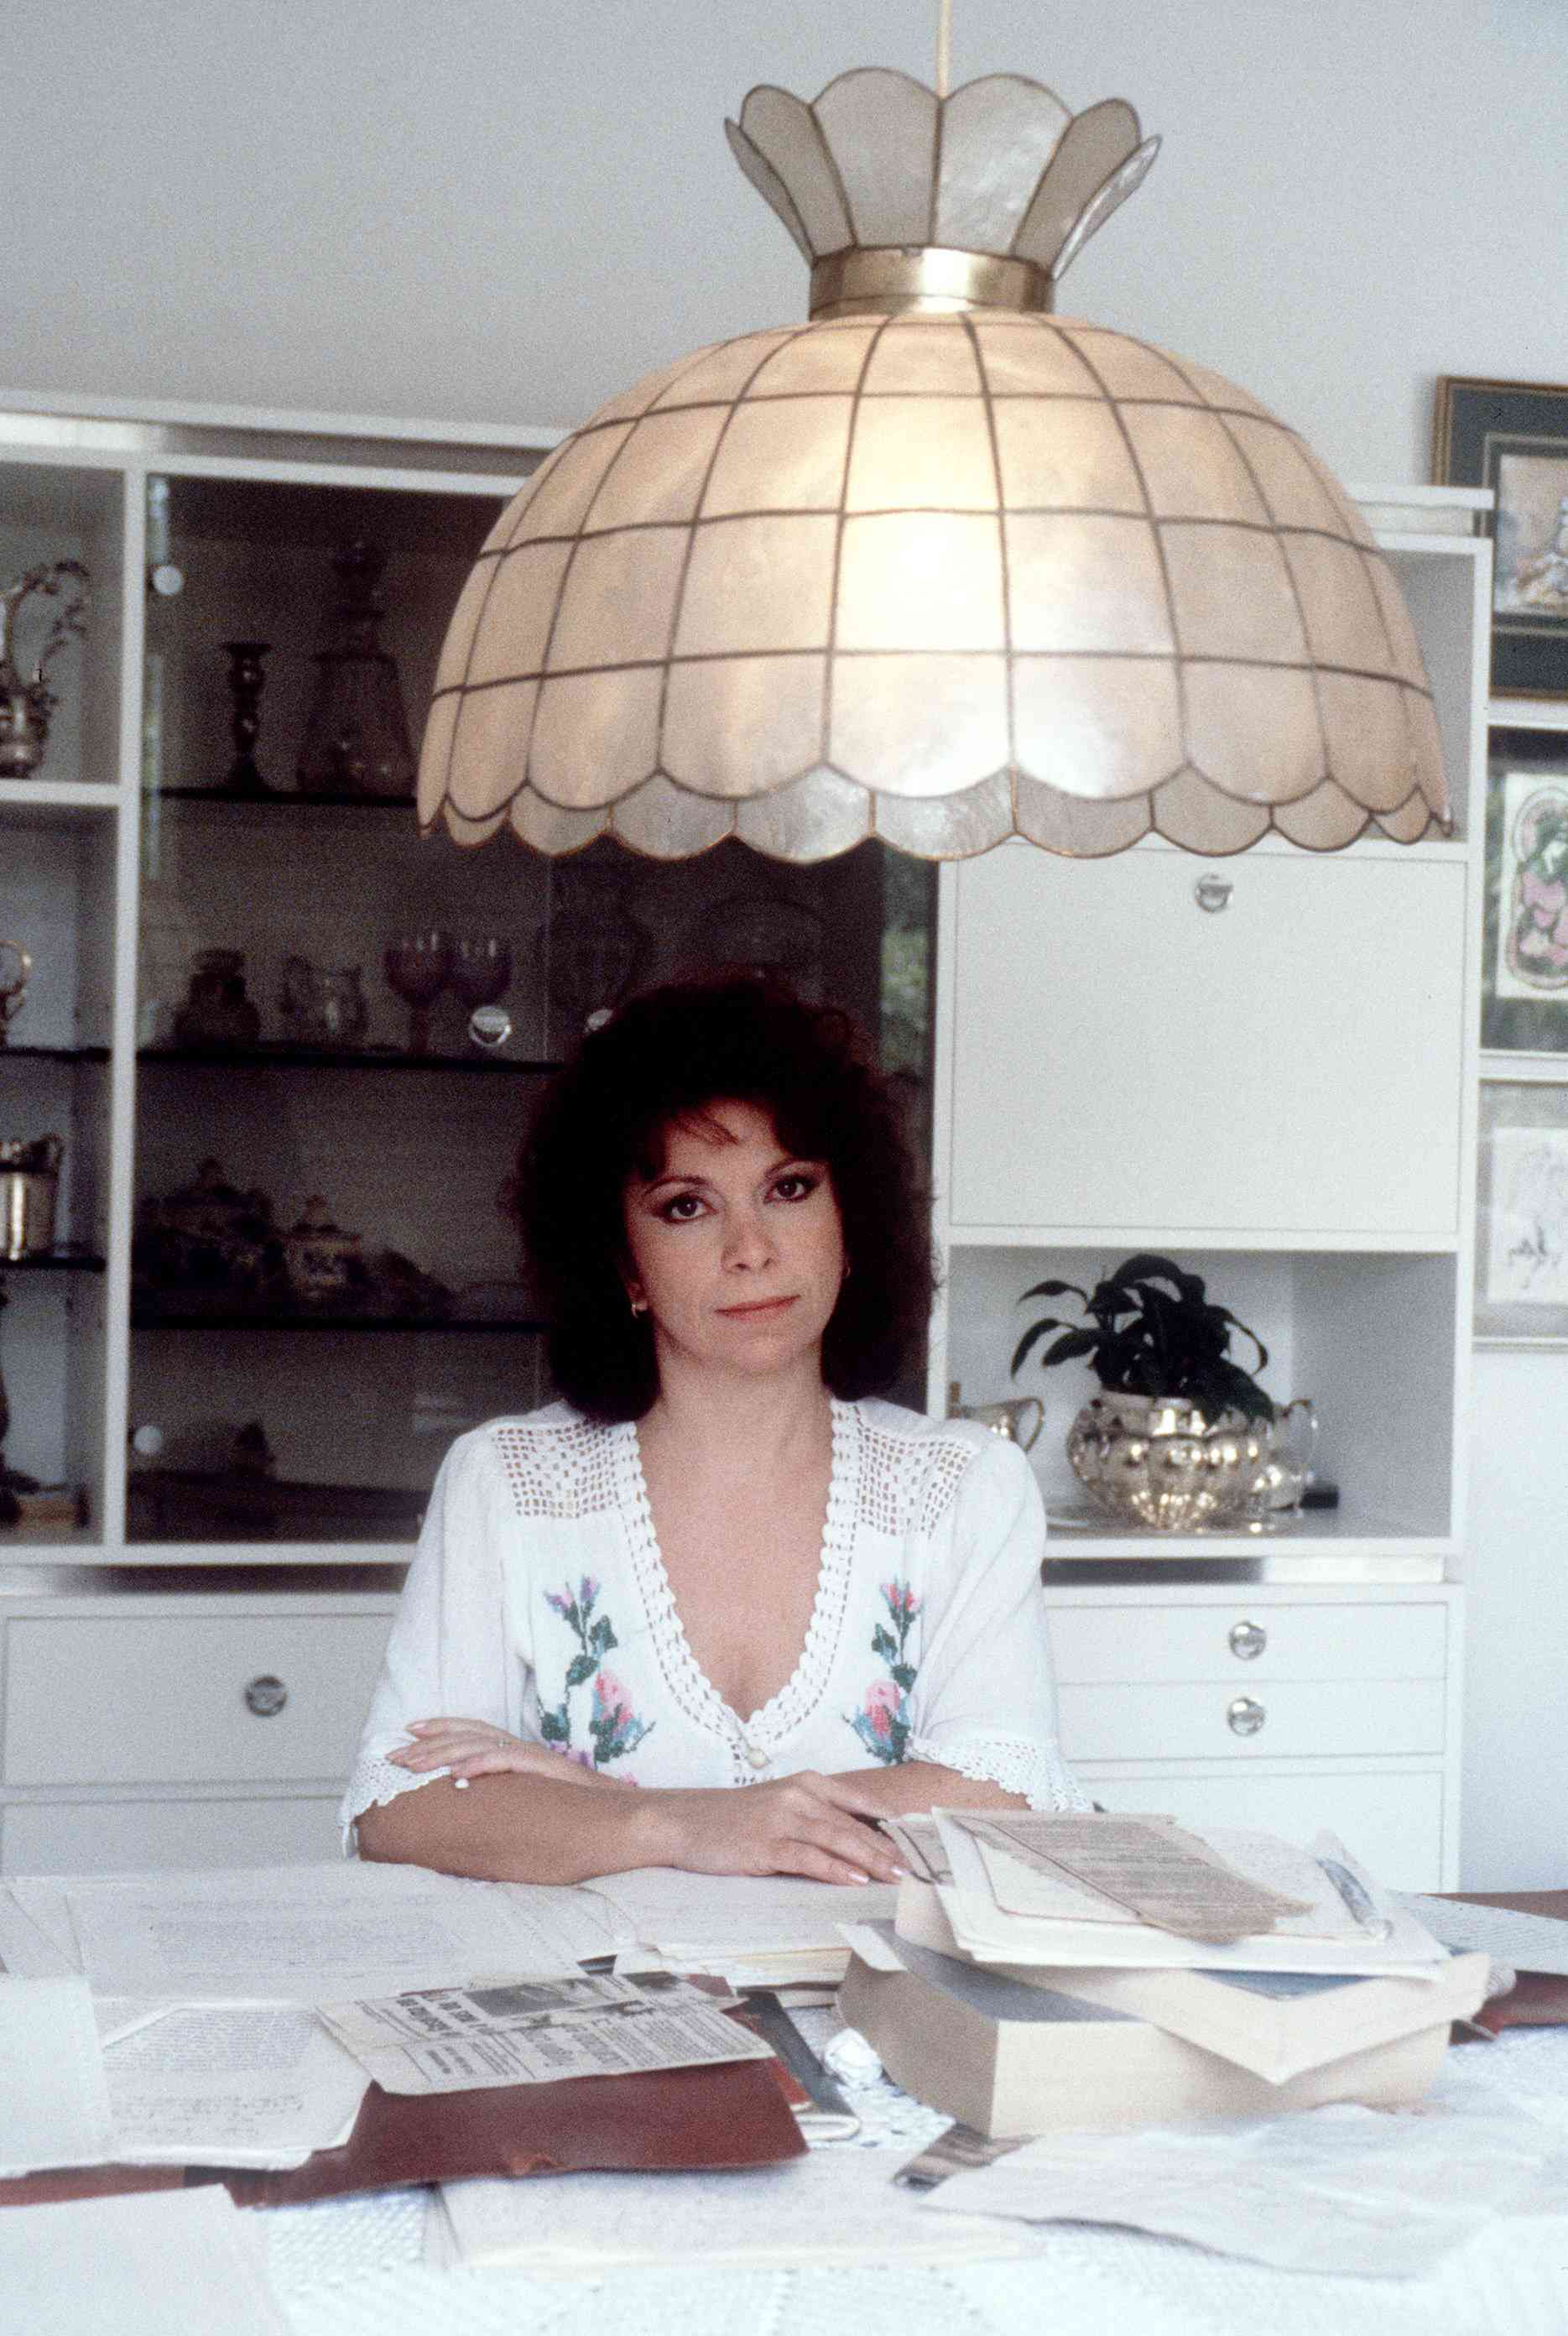 Isabel Allende at a desk covered in papers